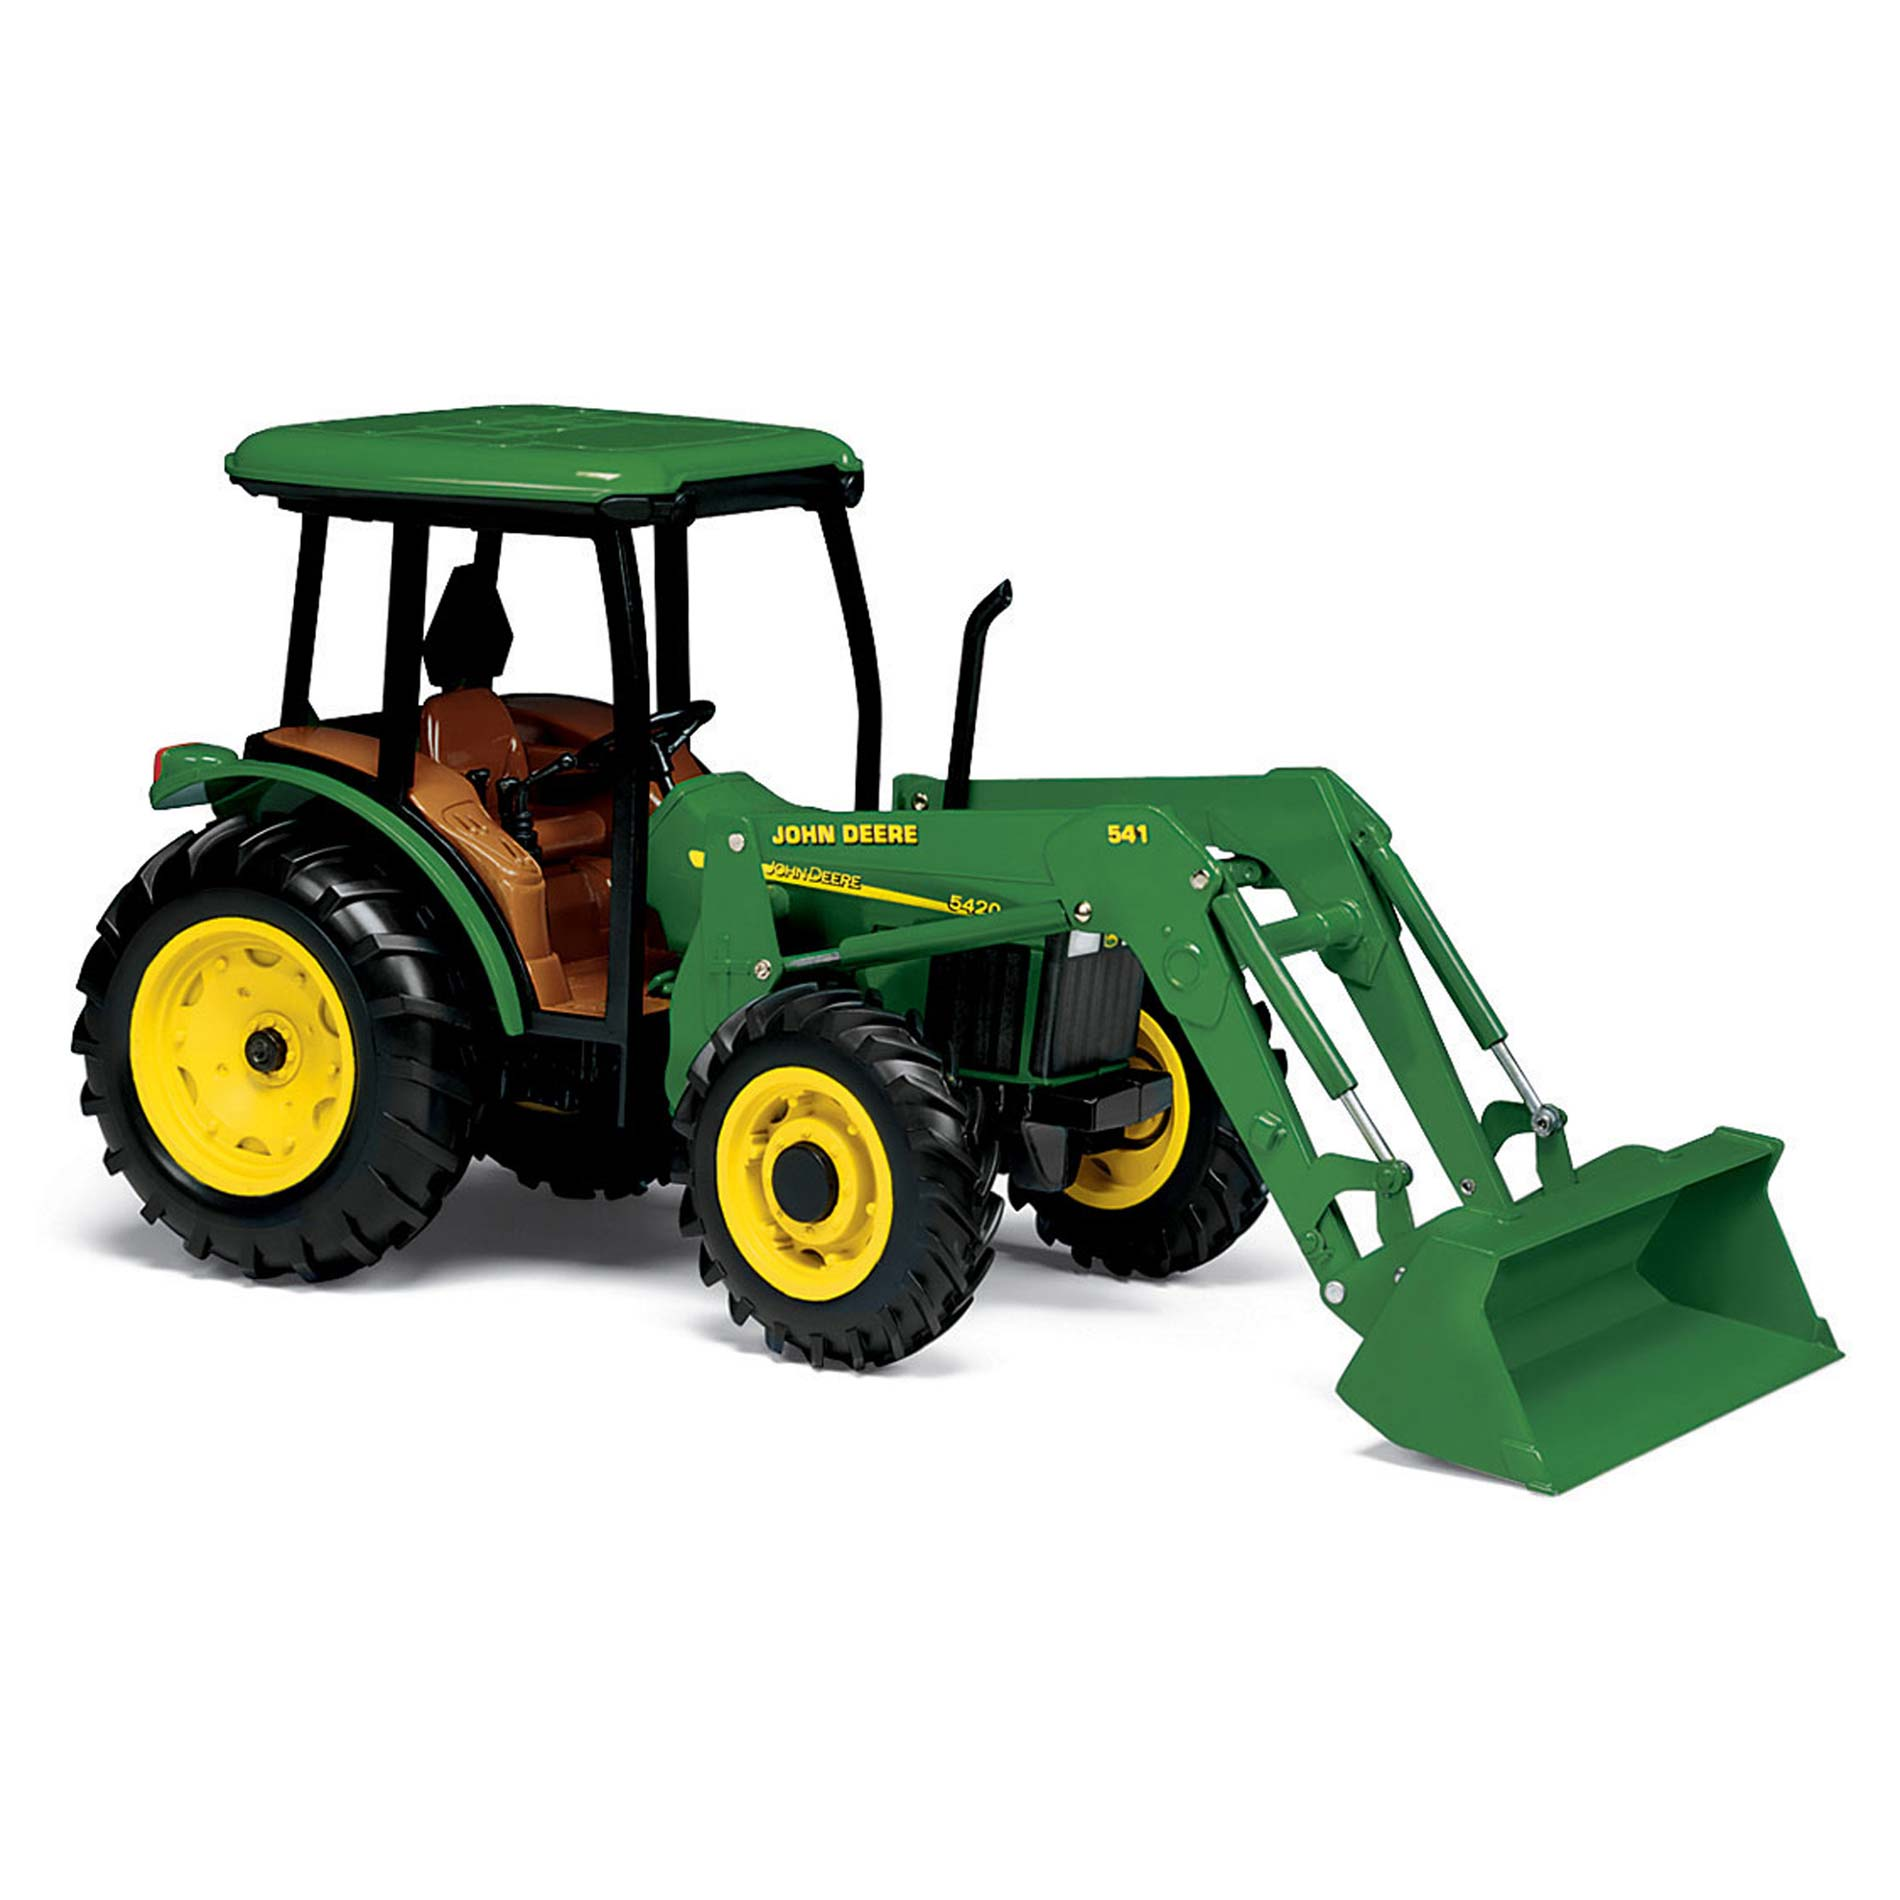 Tomy 15357N Steel Make John Deere 1:16 5420 Tractors Toy ...